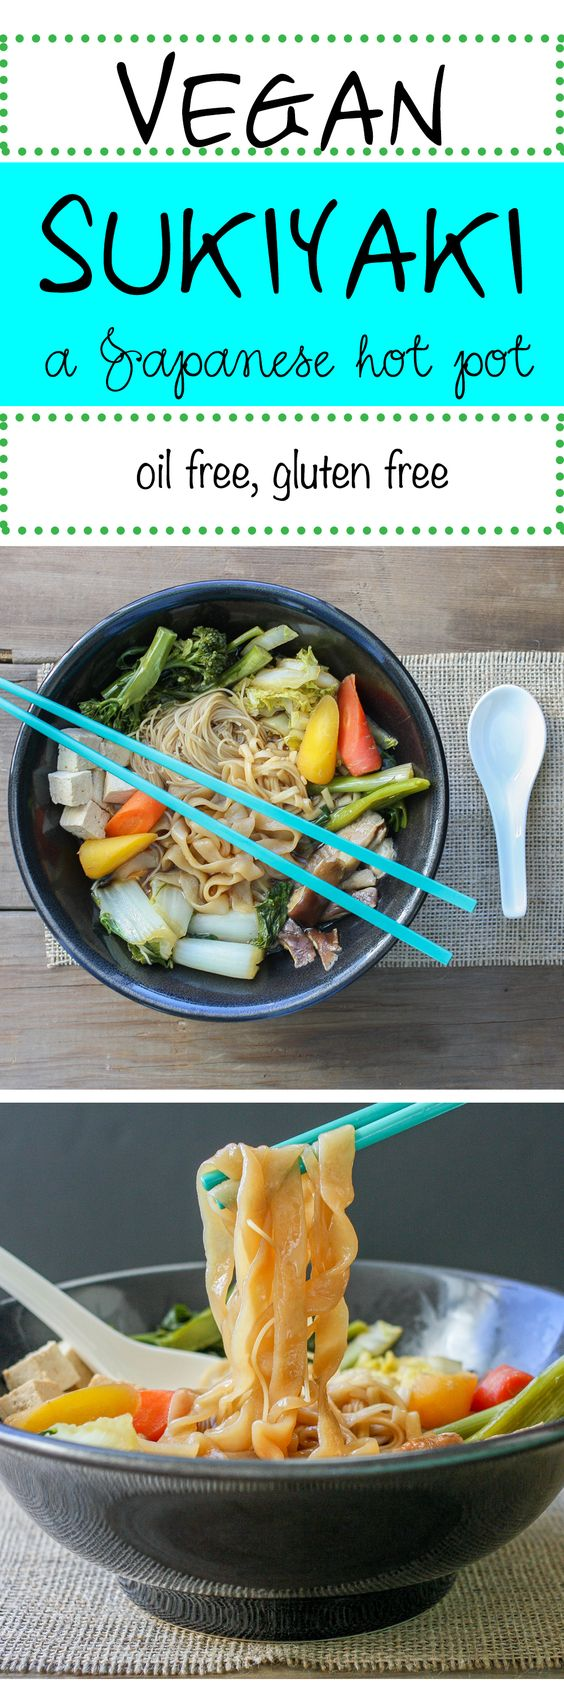 Sukiyaki Japanese hot pot dish | www.veggiesdontbite.com | #vegan #plantbased #glutenfree